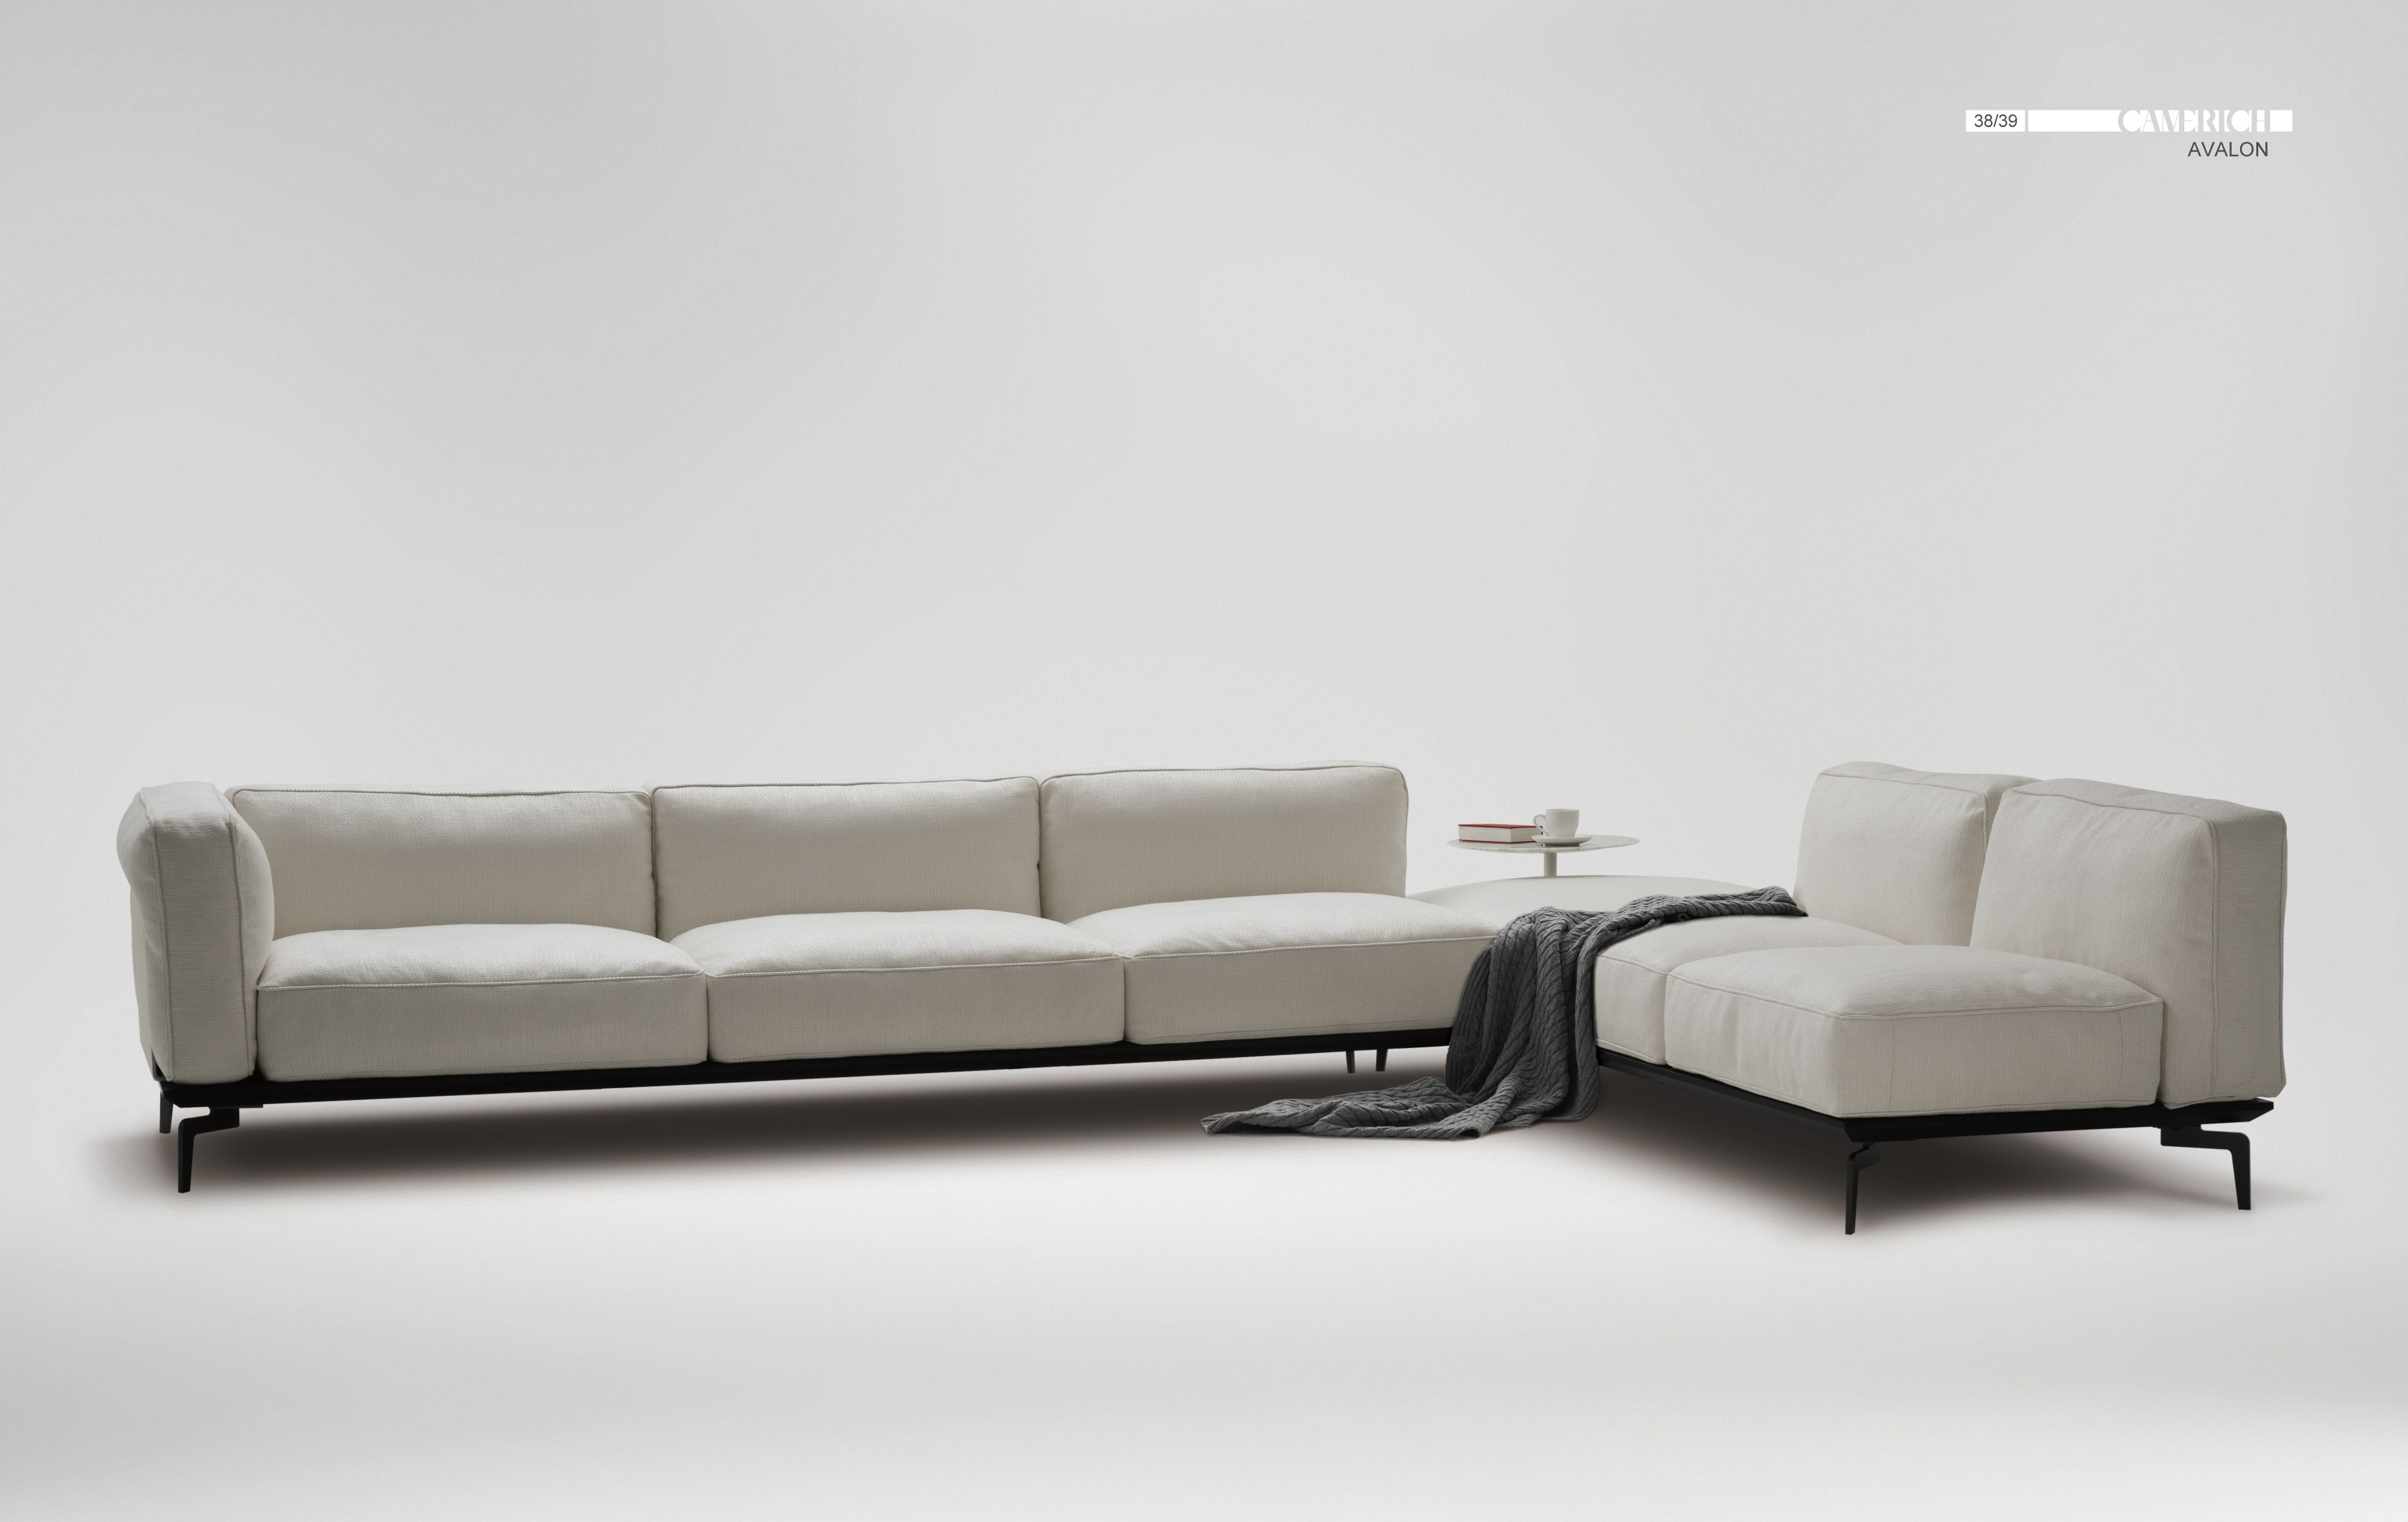 Camerich Casa Sofa available at meizai